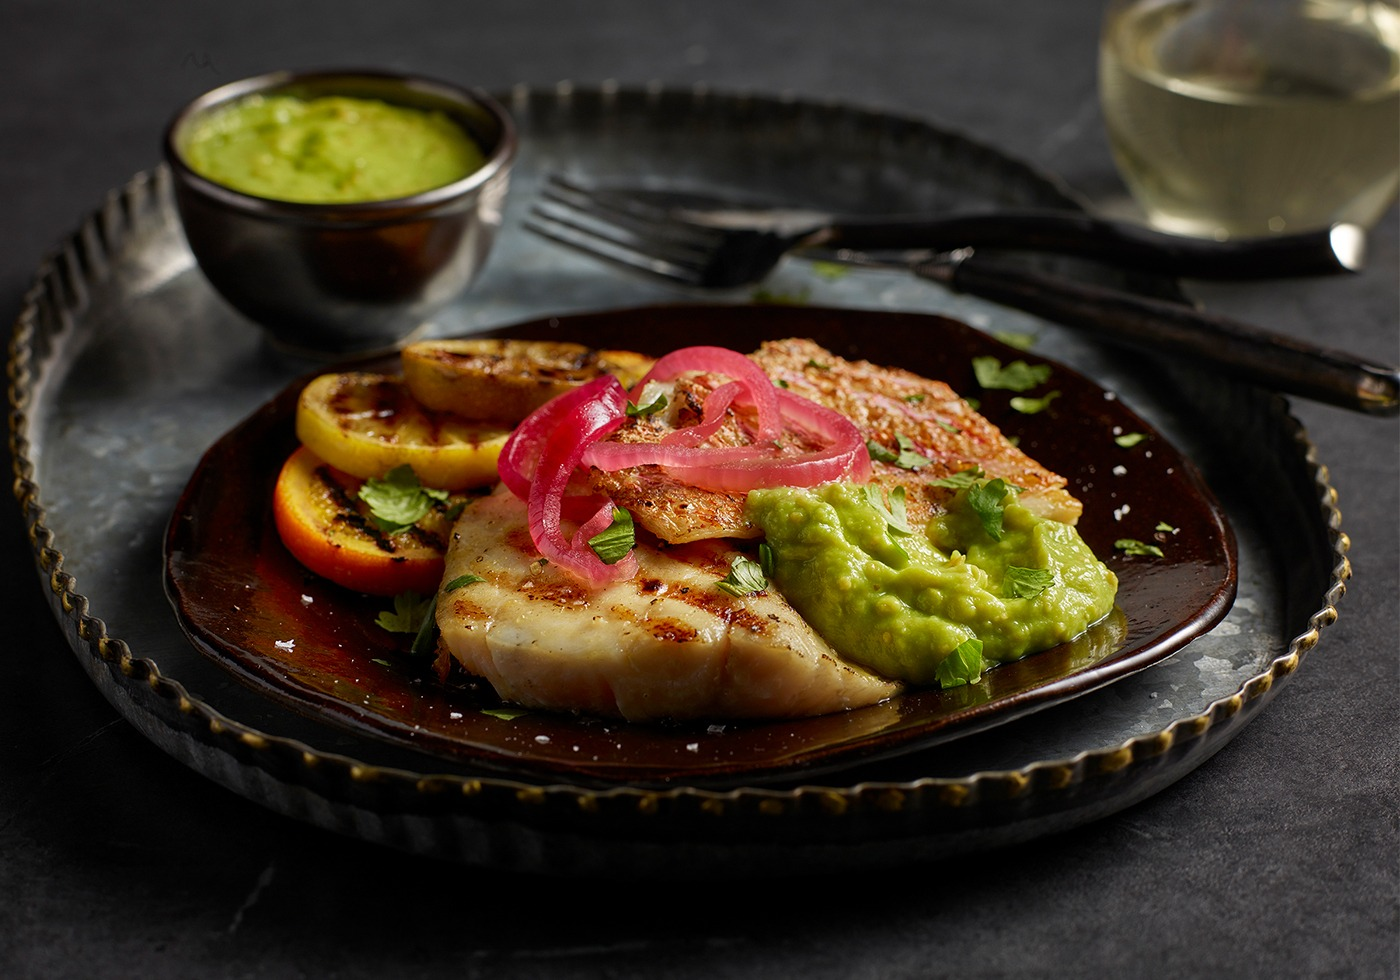 GRILLED RED SNAPPER WITH AVOCADO & TOMATILLO SALSA on plate